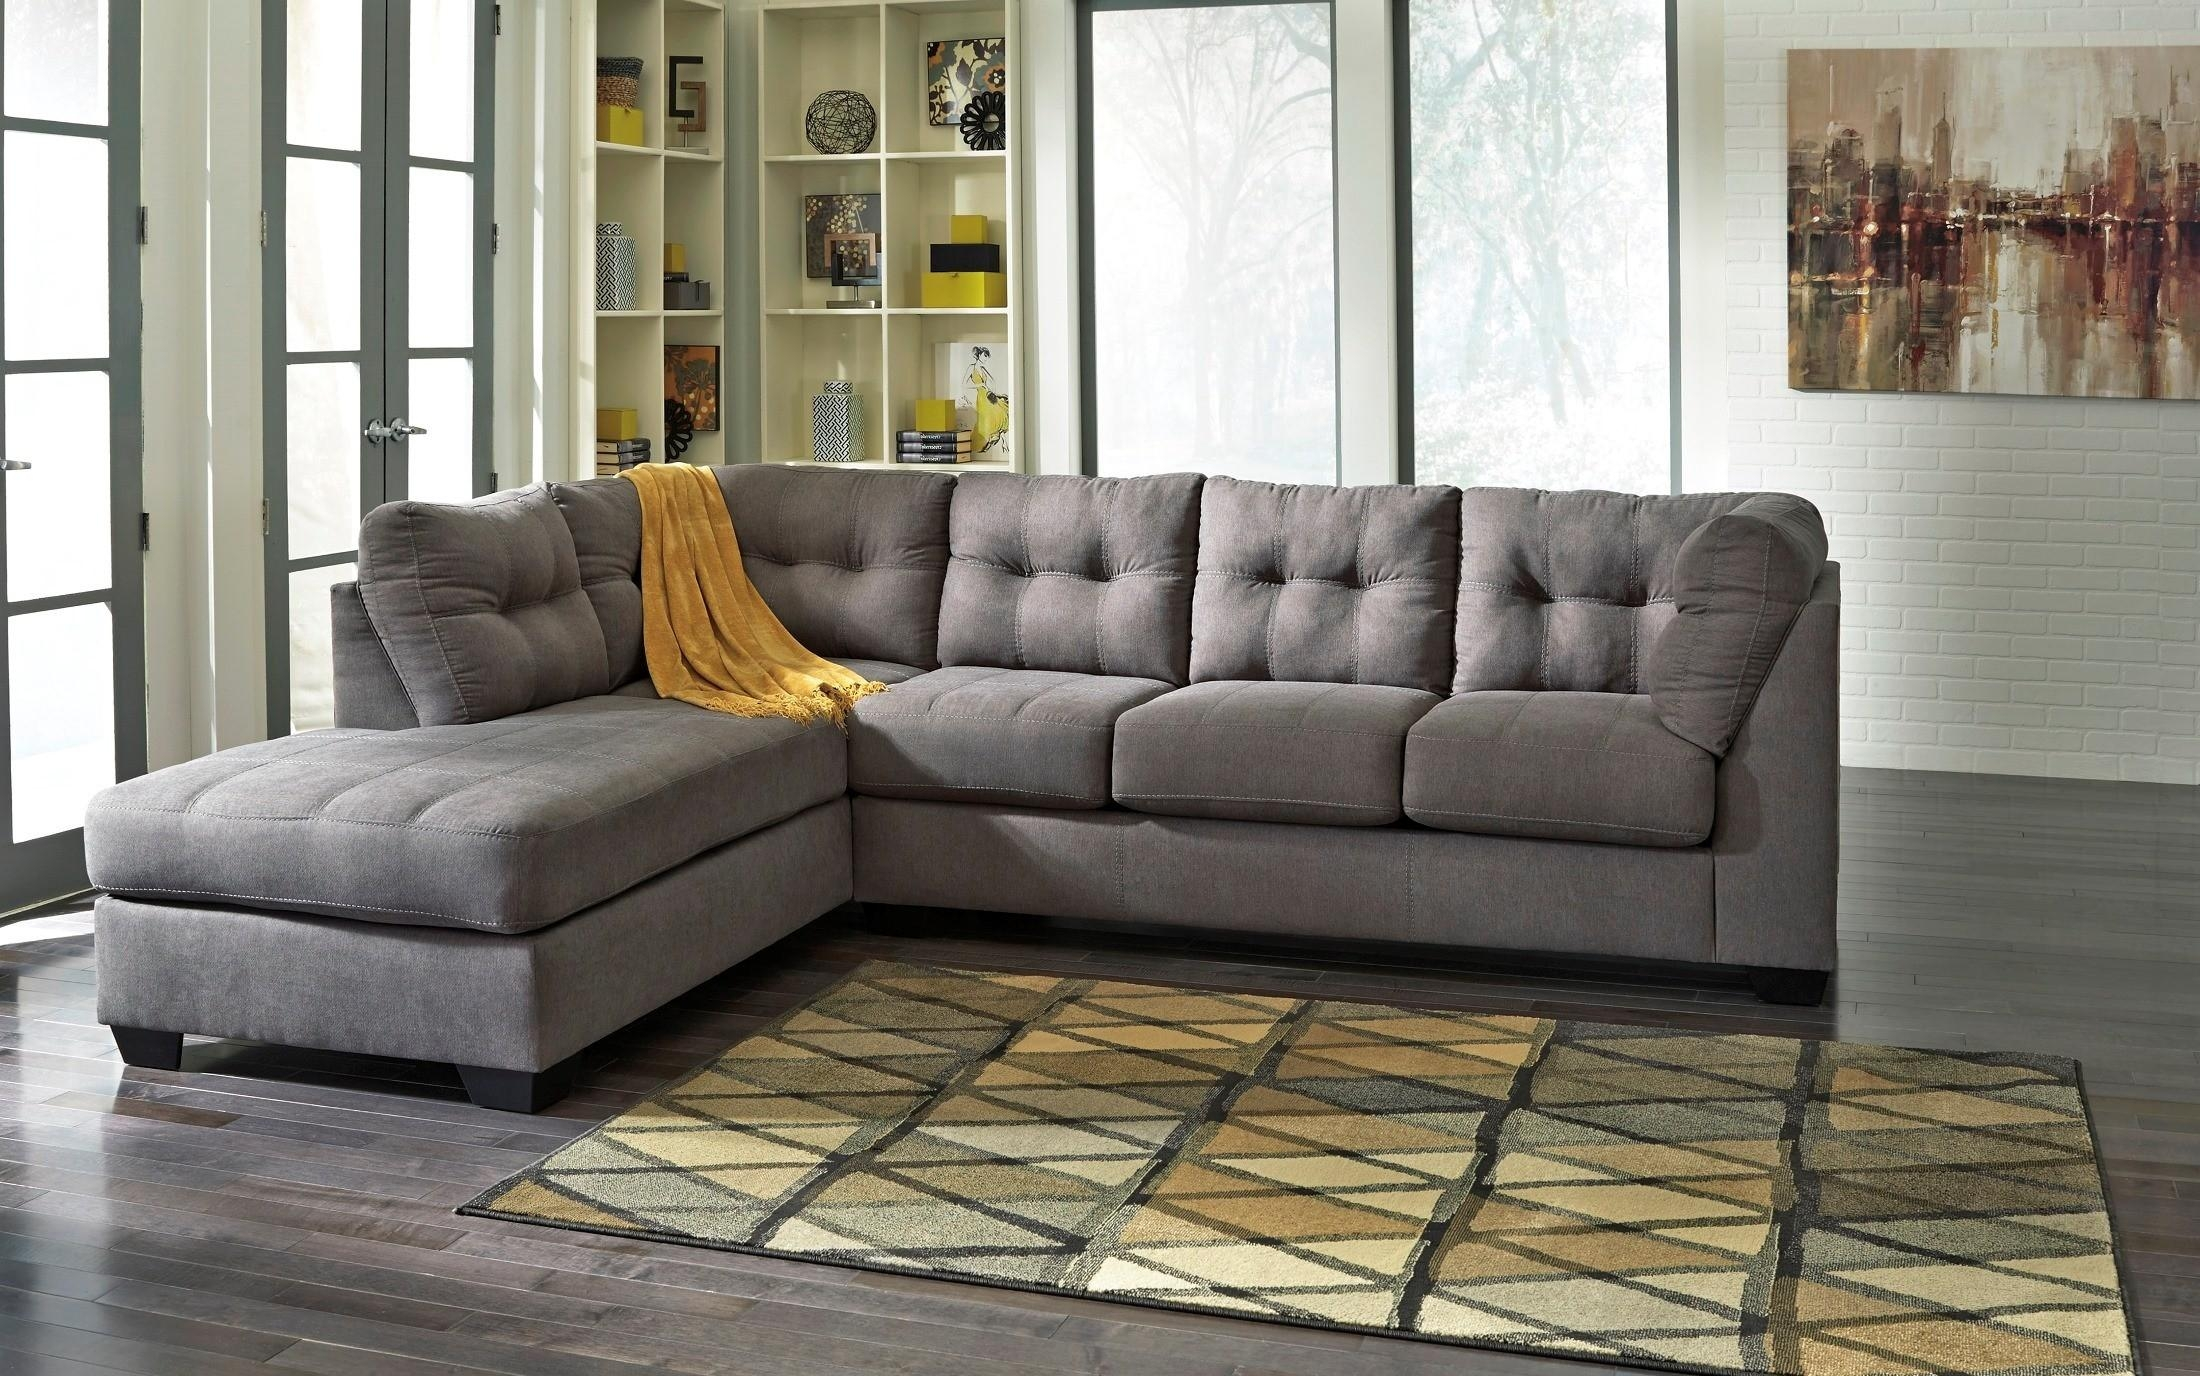 Maier Charcoal Laf Sectional From Ashley (45200 16 67) | Coleman Regarding Ashley Sectional Sleeper (Image 6 of 15)